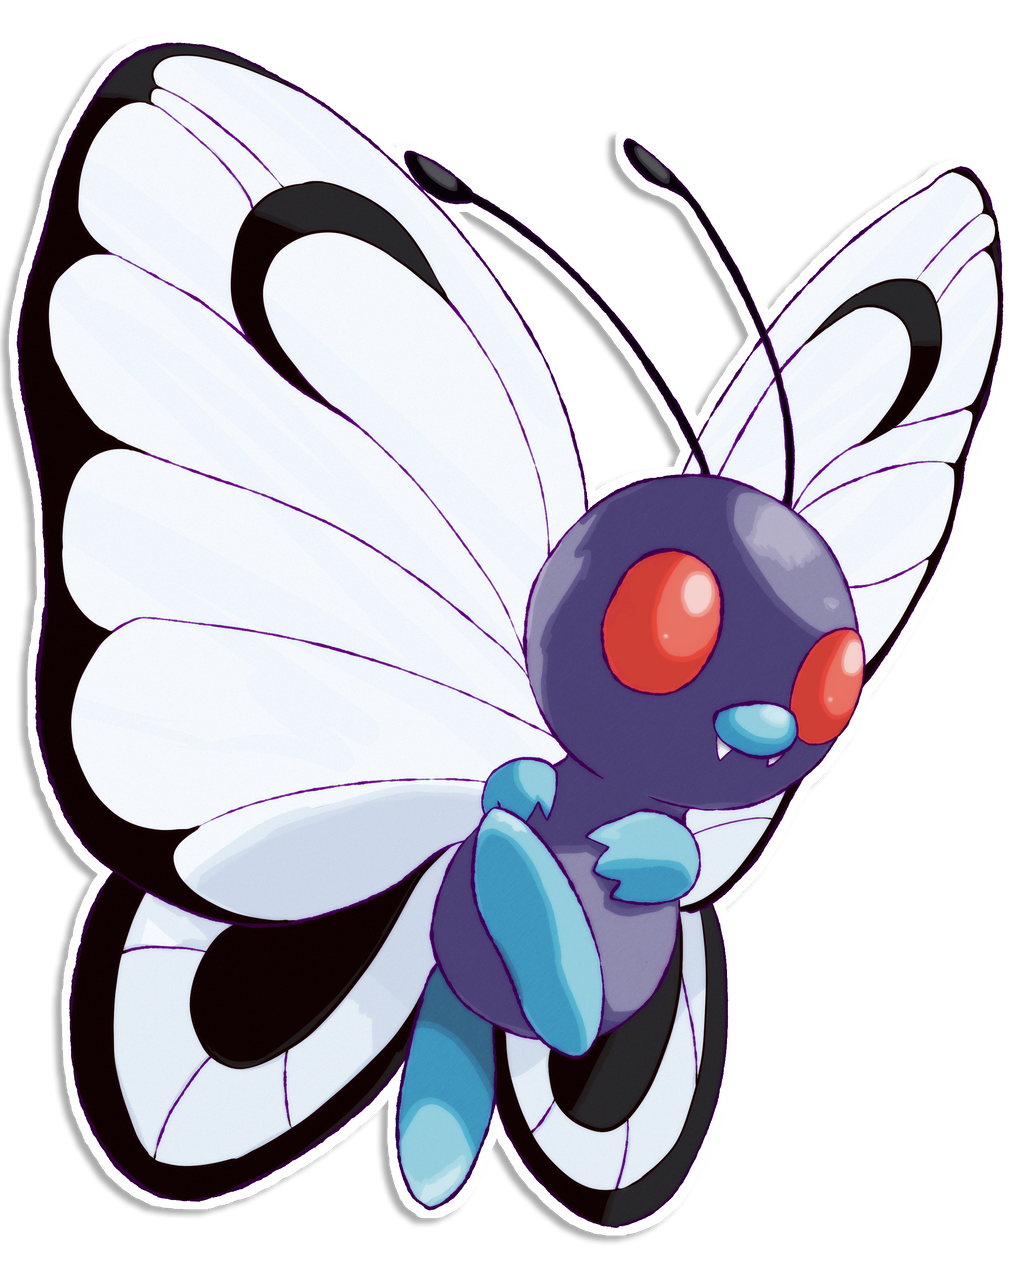 012_butterfree_by_sarahrichford-d8s94de.png